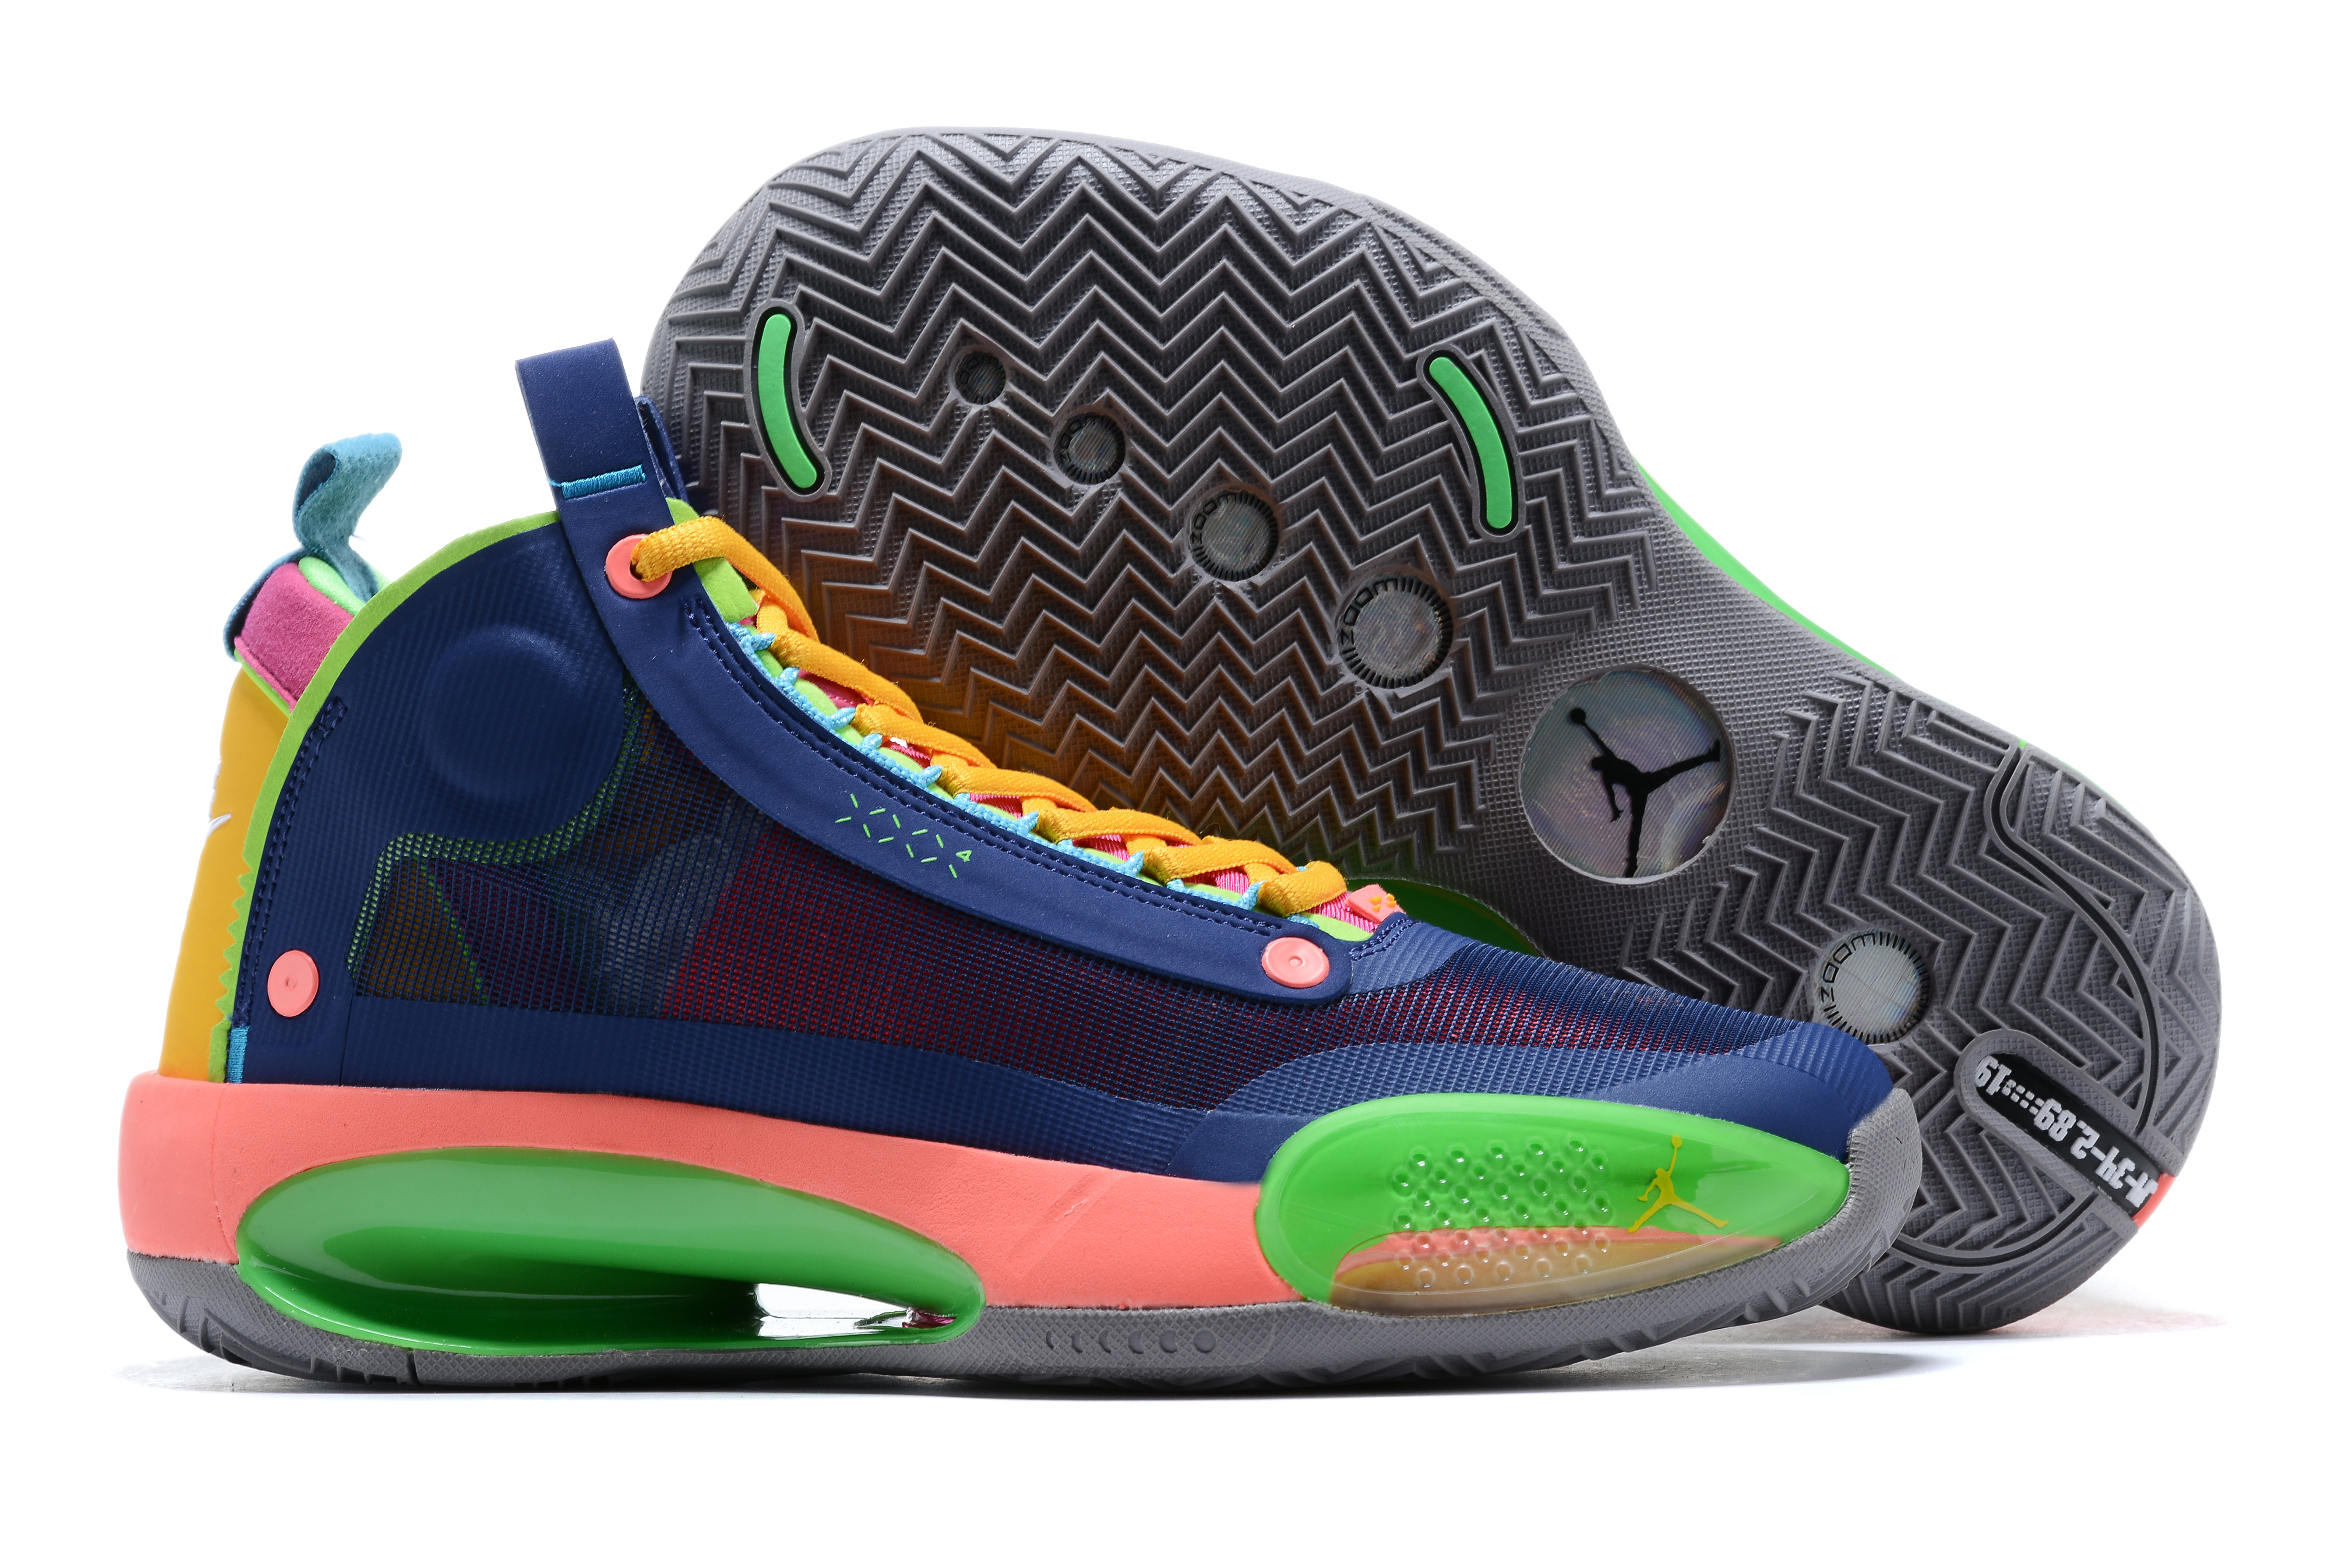 Air Jordan 34 Deep Blue Green Orange Shoes